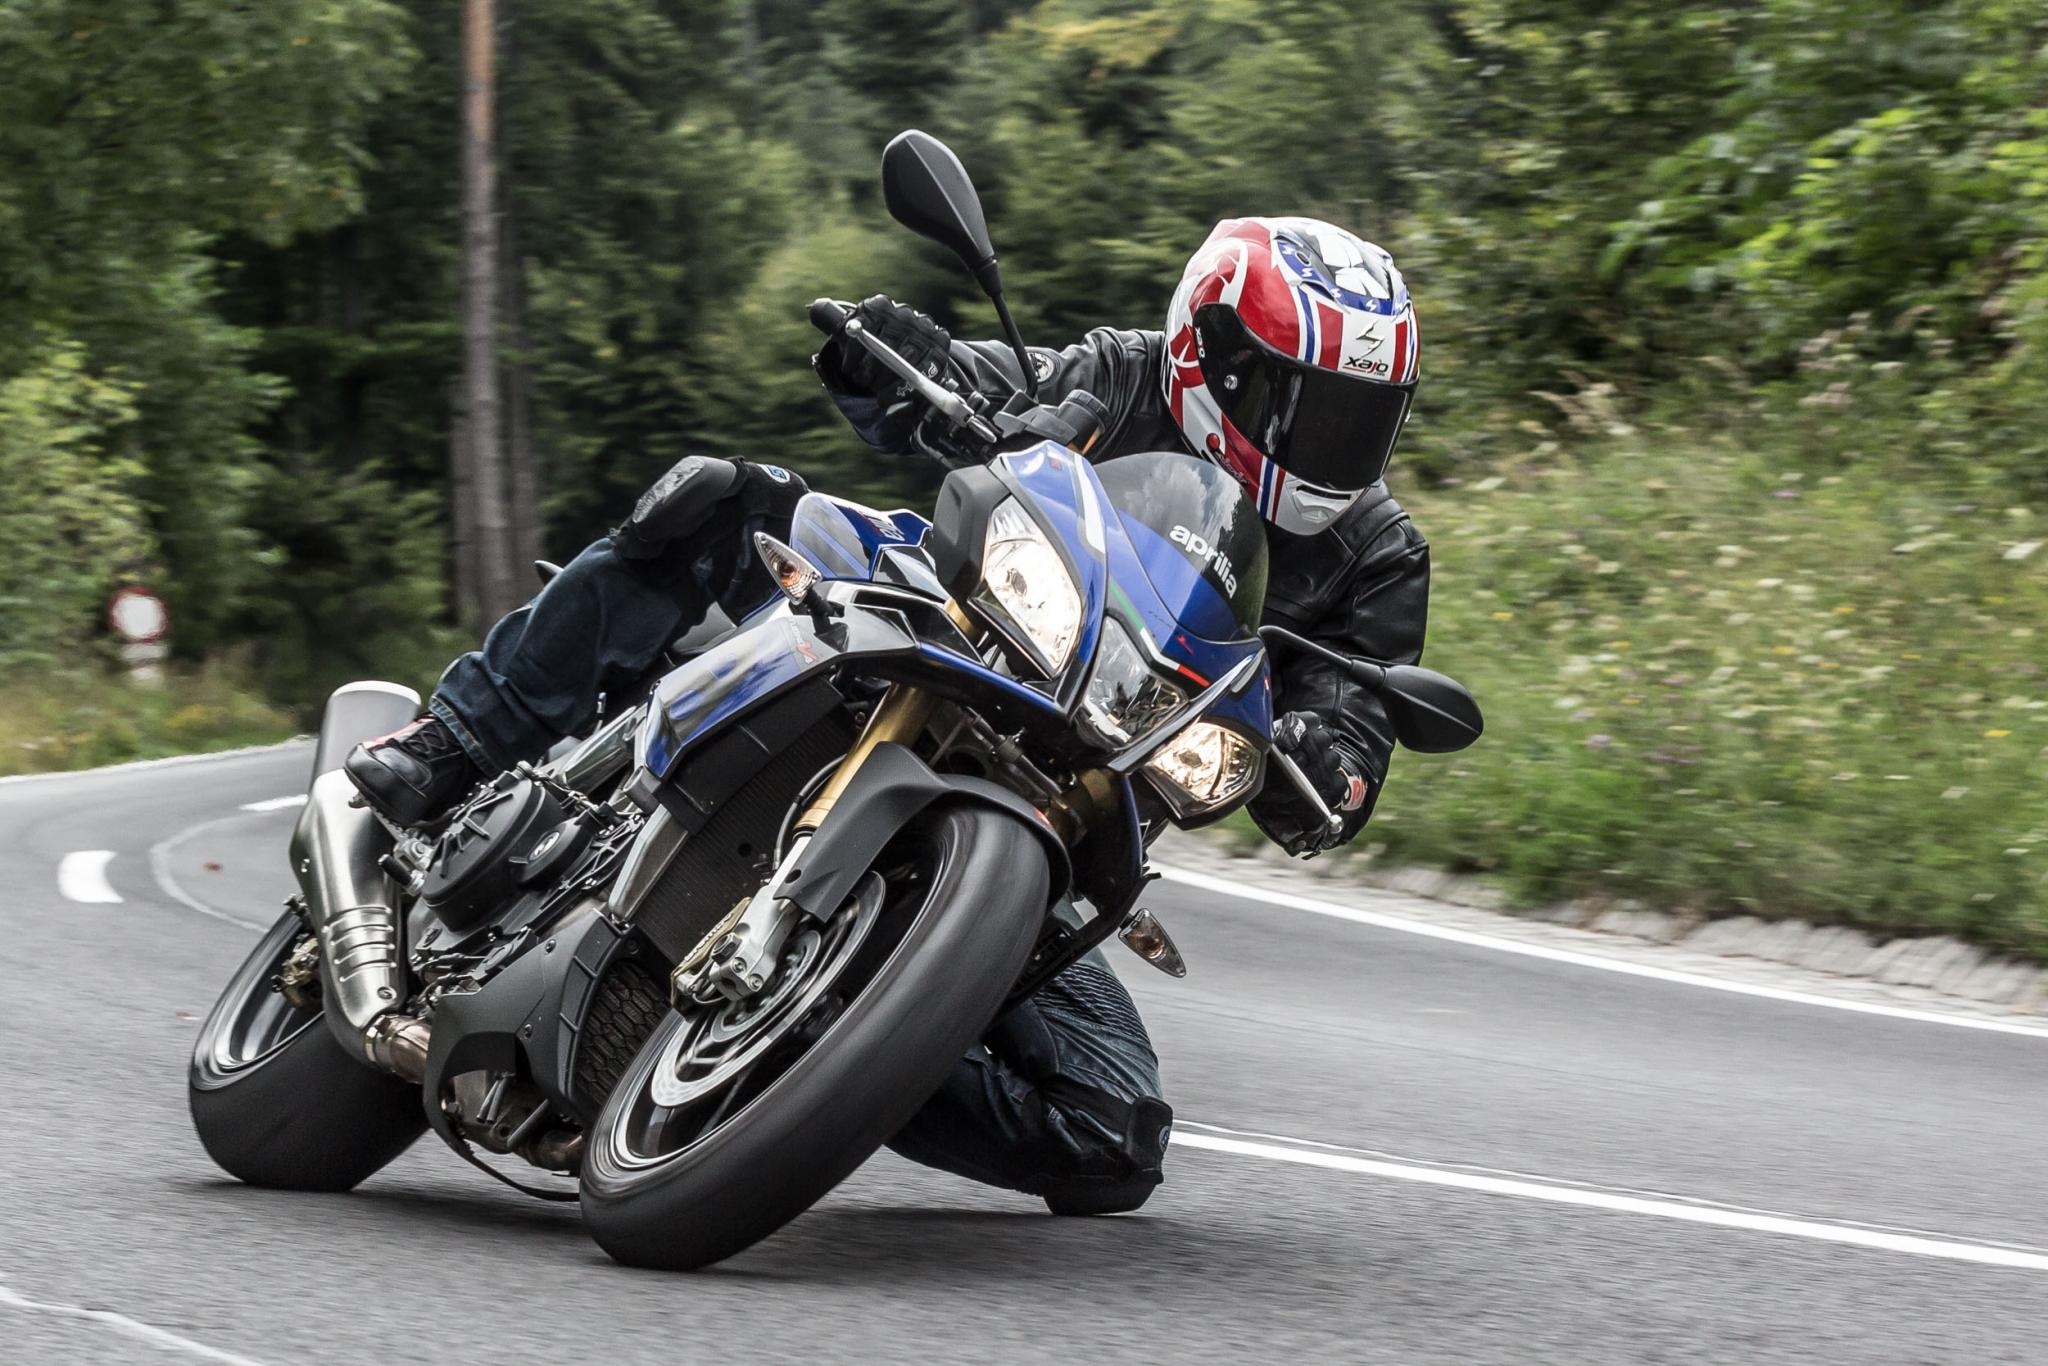 Power Naked Bike Test 2016 - Aprilia Tuono V4 1100 RR vs BMW S 1000 R vs Yamaha MT-10 Foto